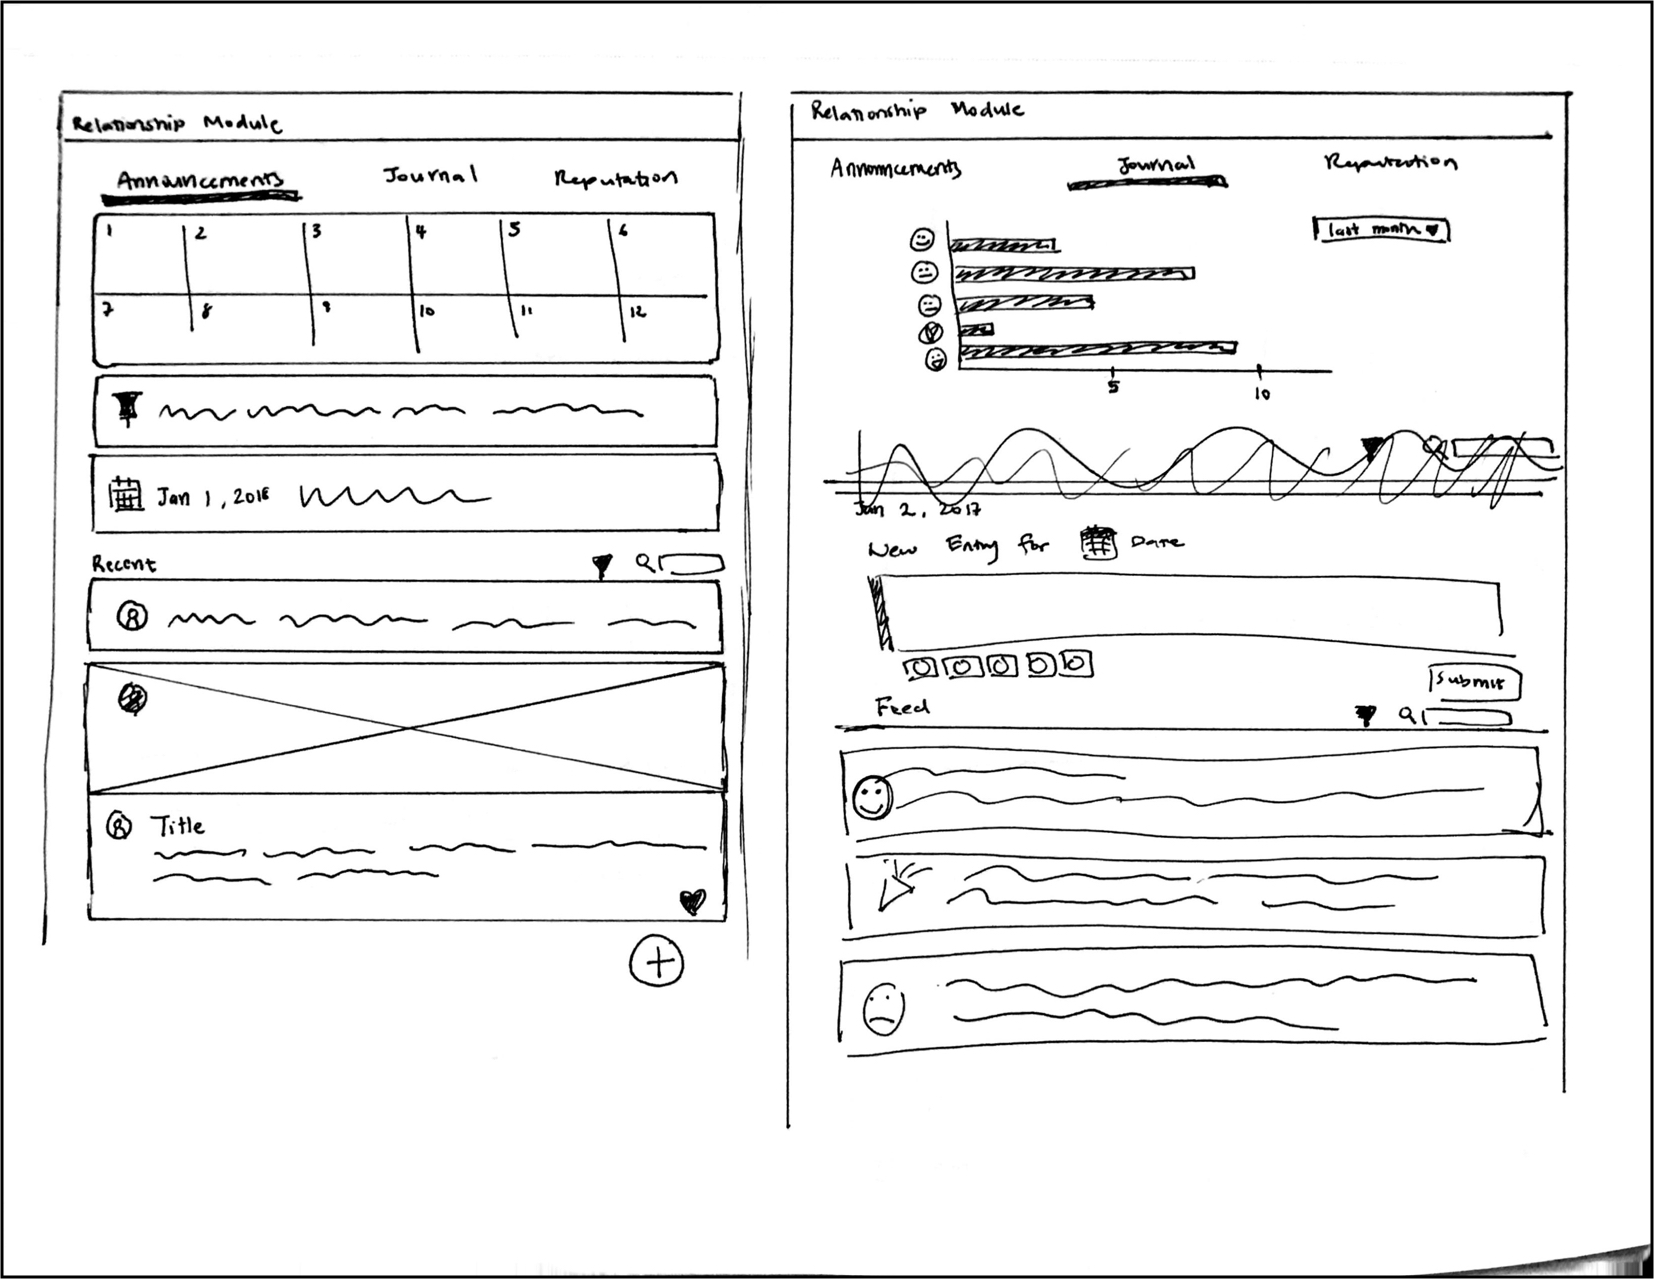 Sketching possible designs for the Announcements and Journal sections (click to enlarge)